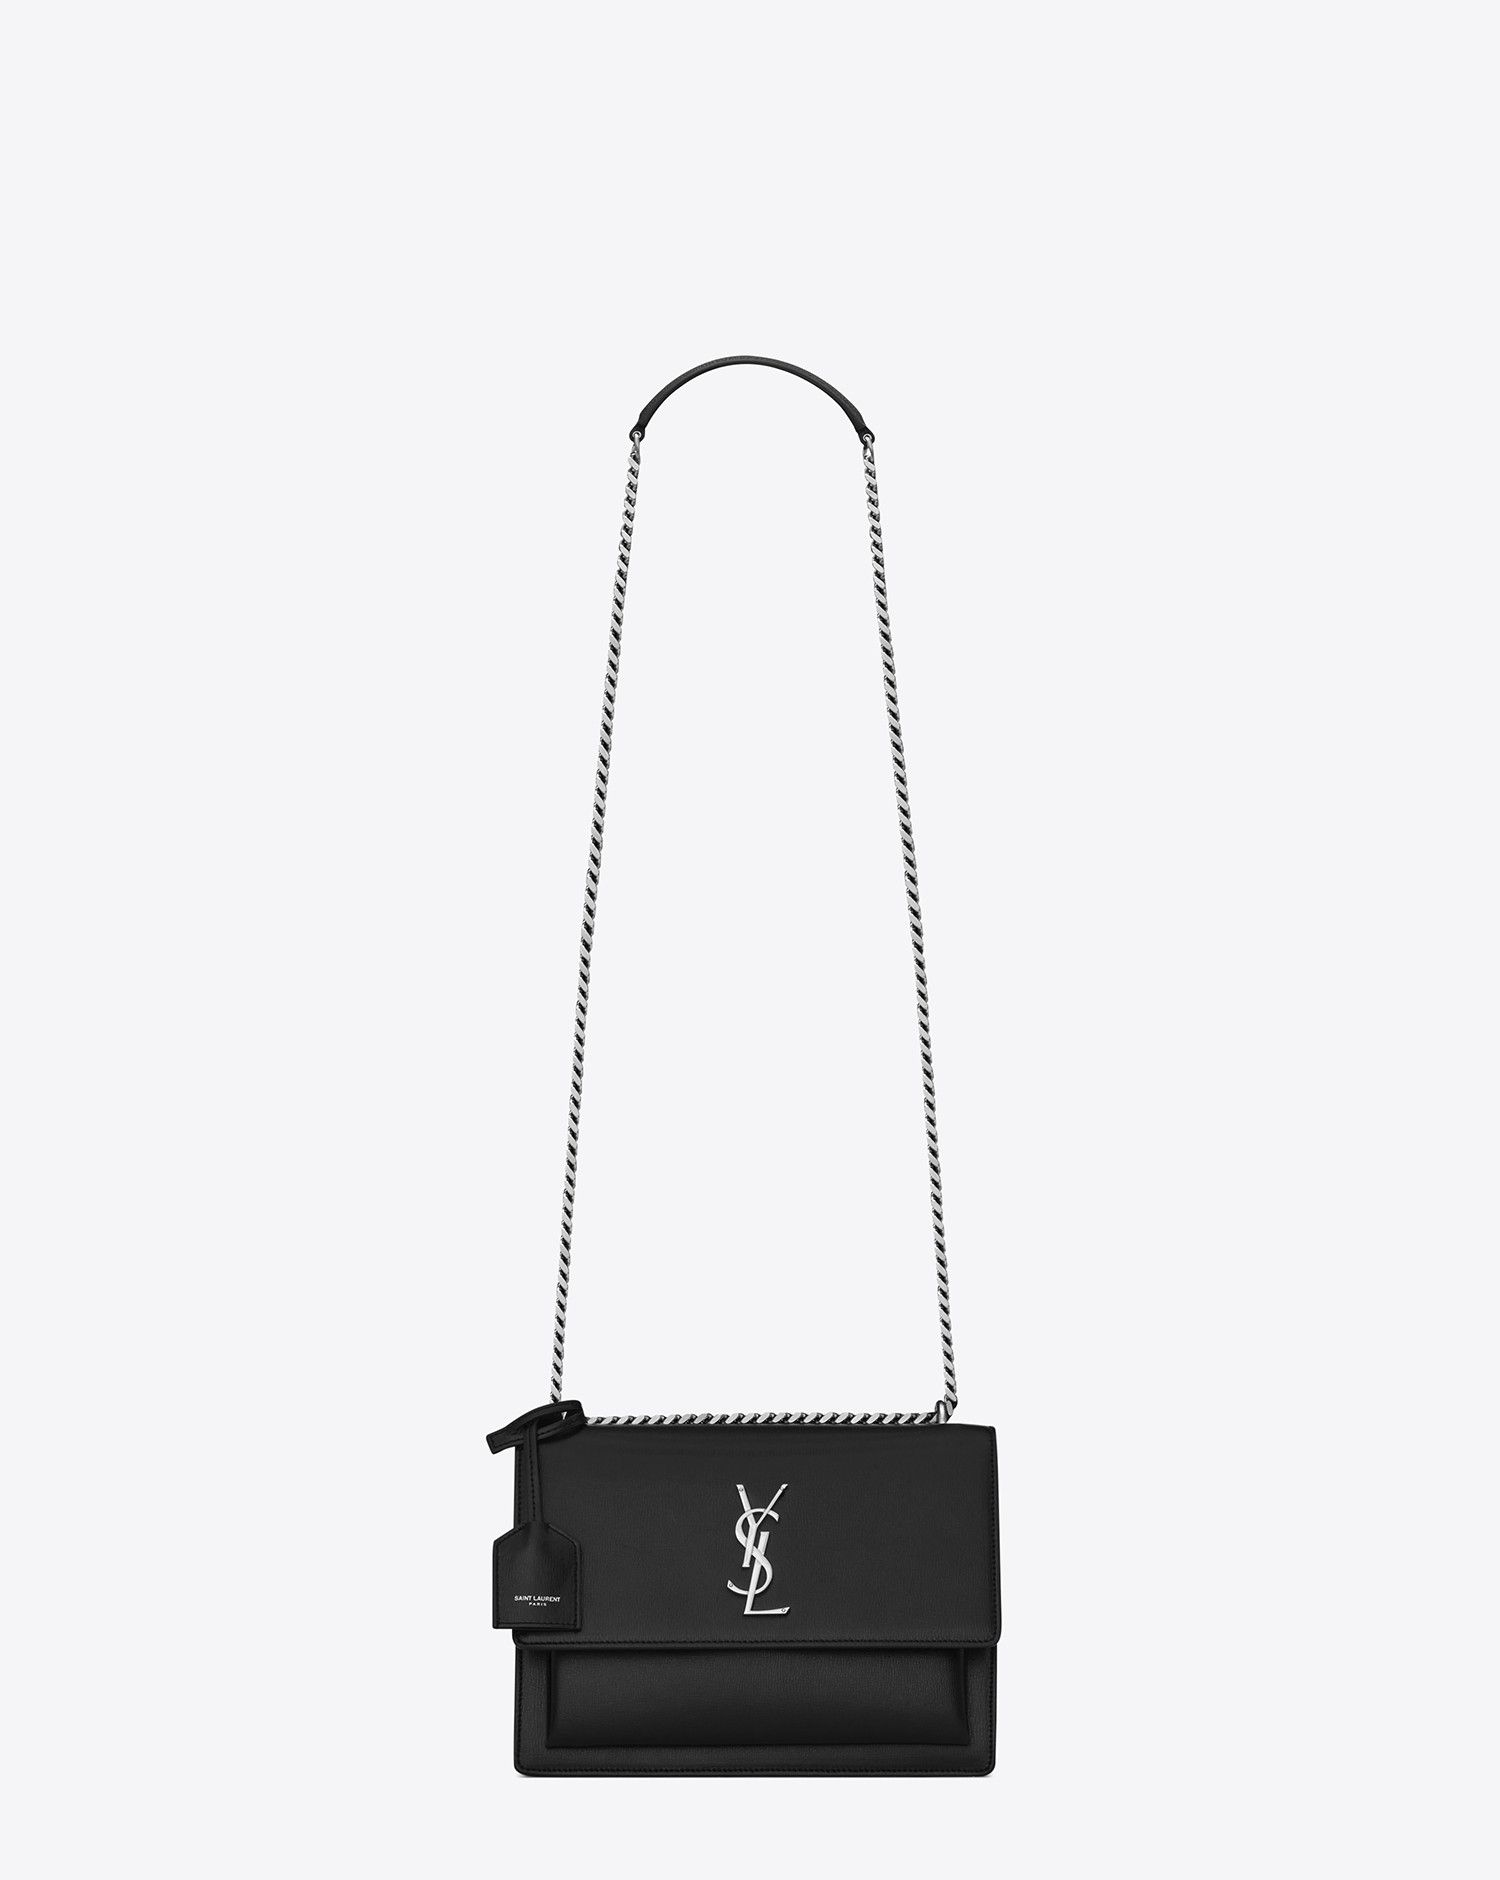 280e6fe74e Saint Laurent Medium SUNSET MONOGRAM SAINT LAURENT Bag In Black